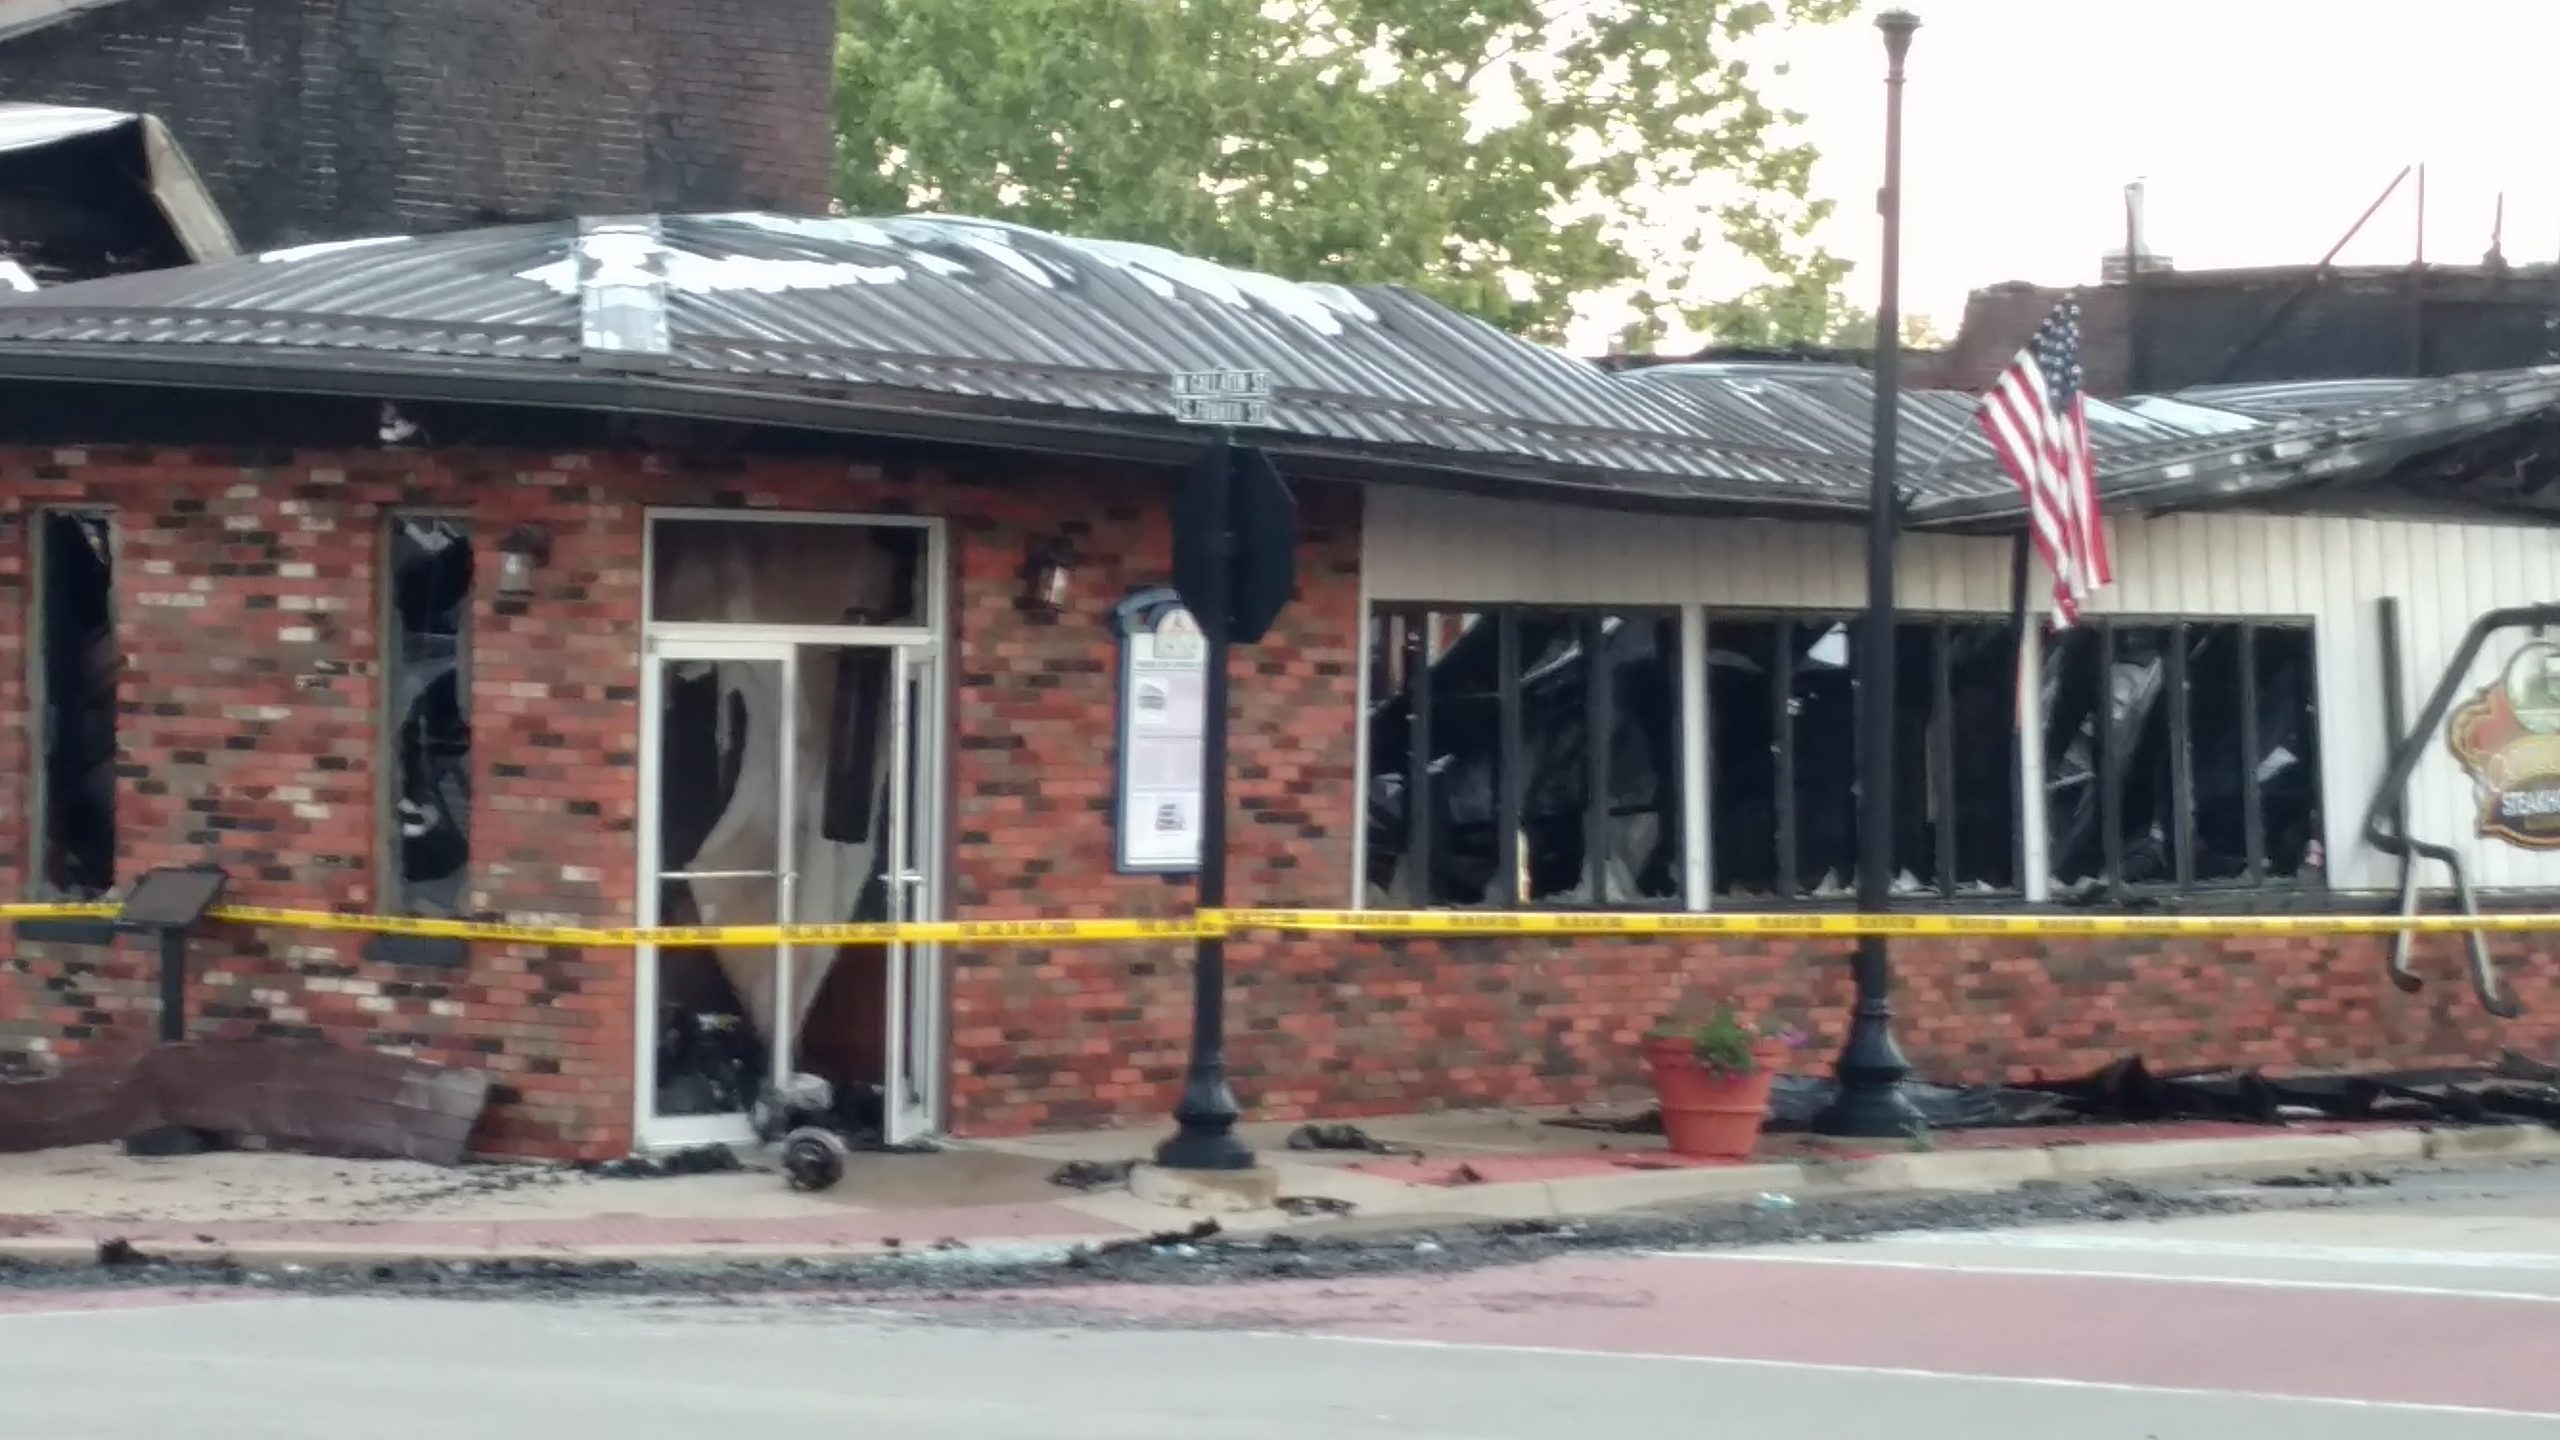 Downtown Vandalia Restaurant a total loss, another business damaged in overnight fire